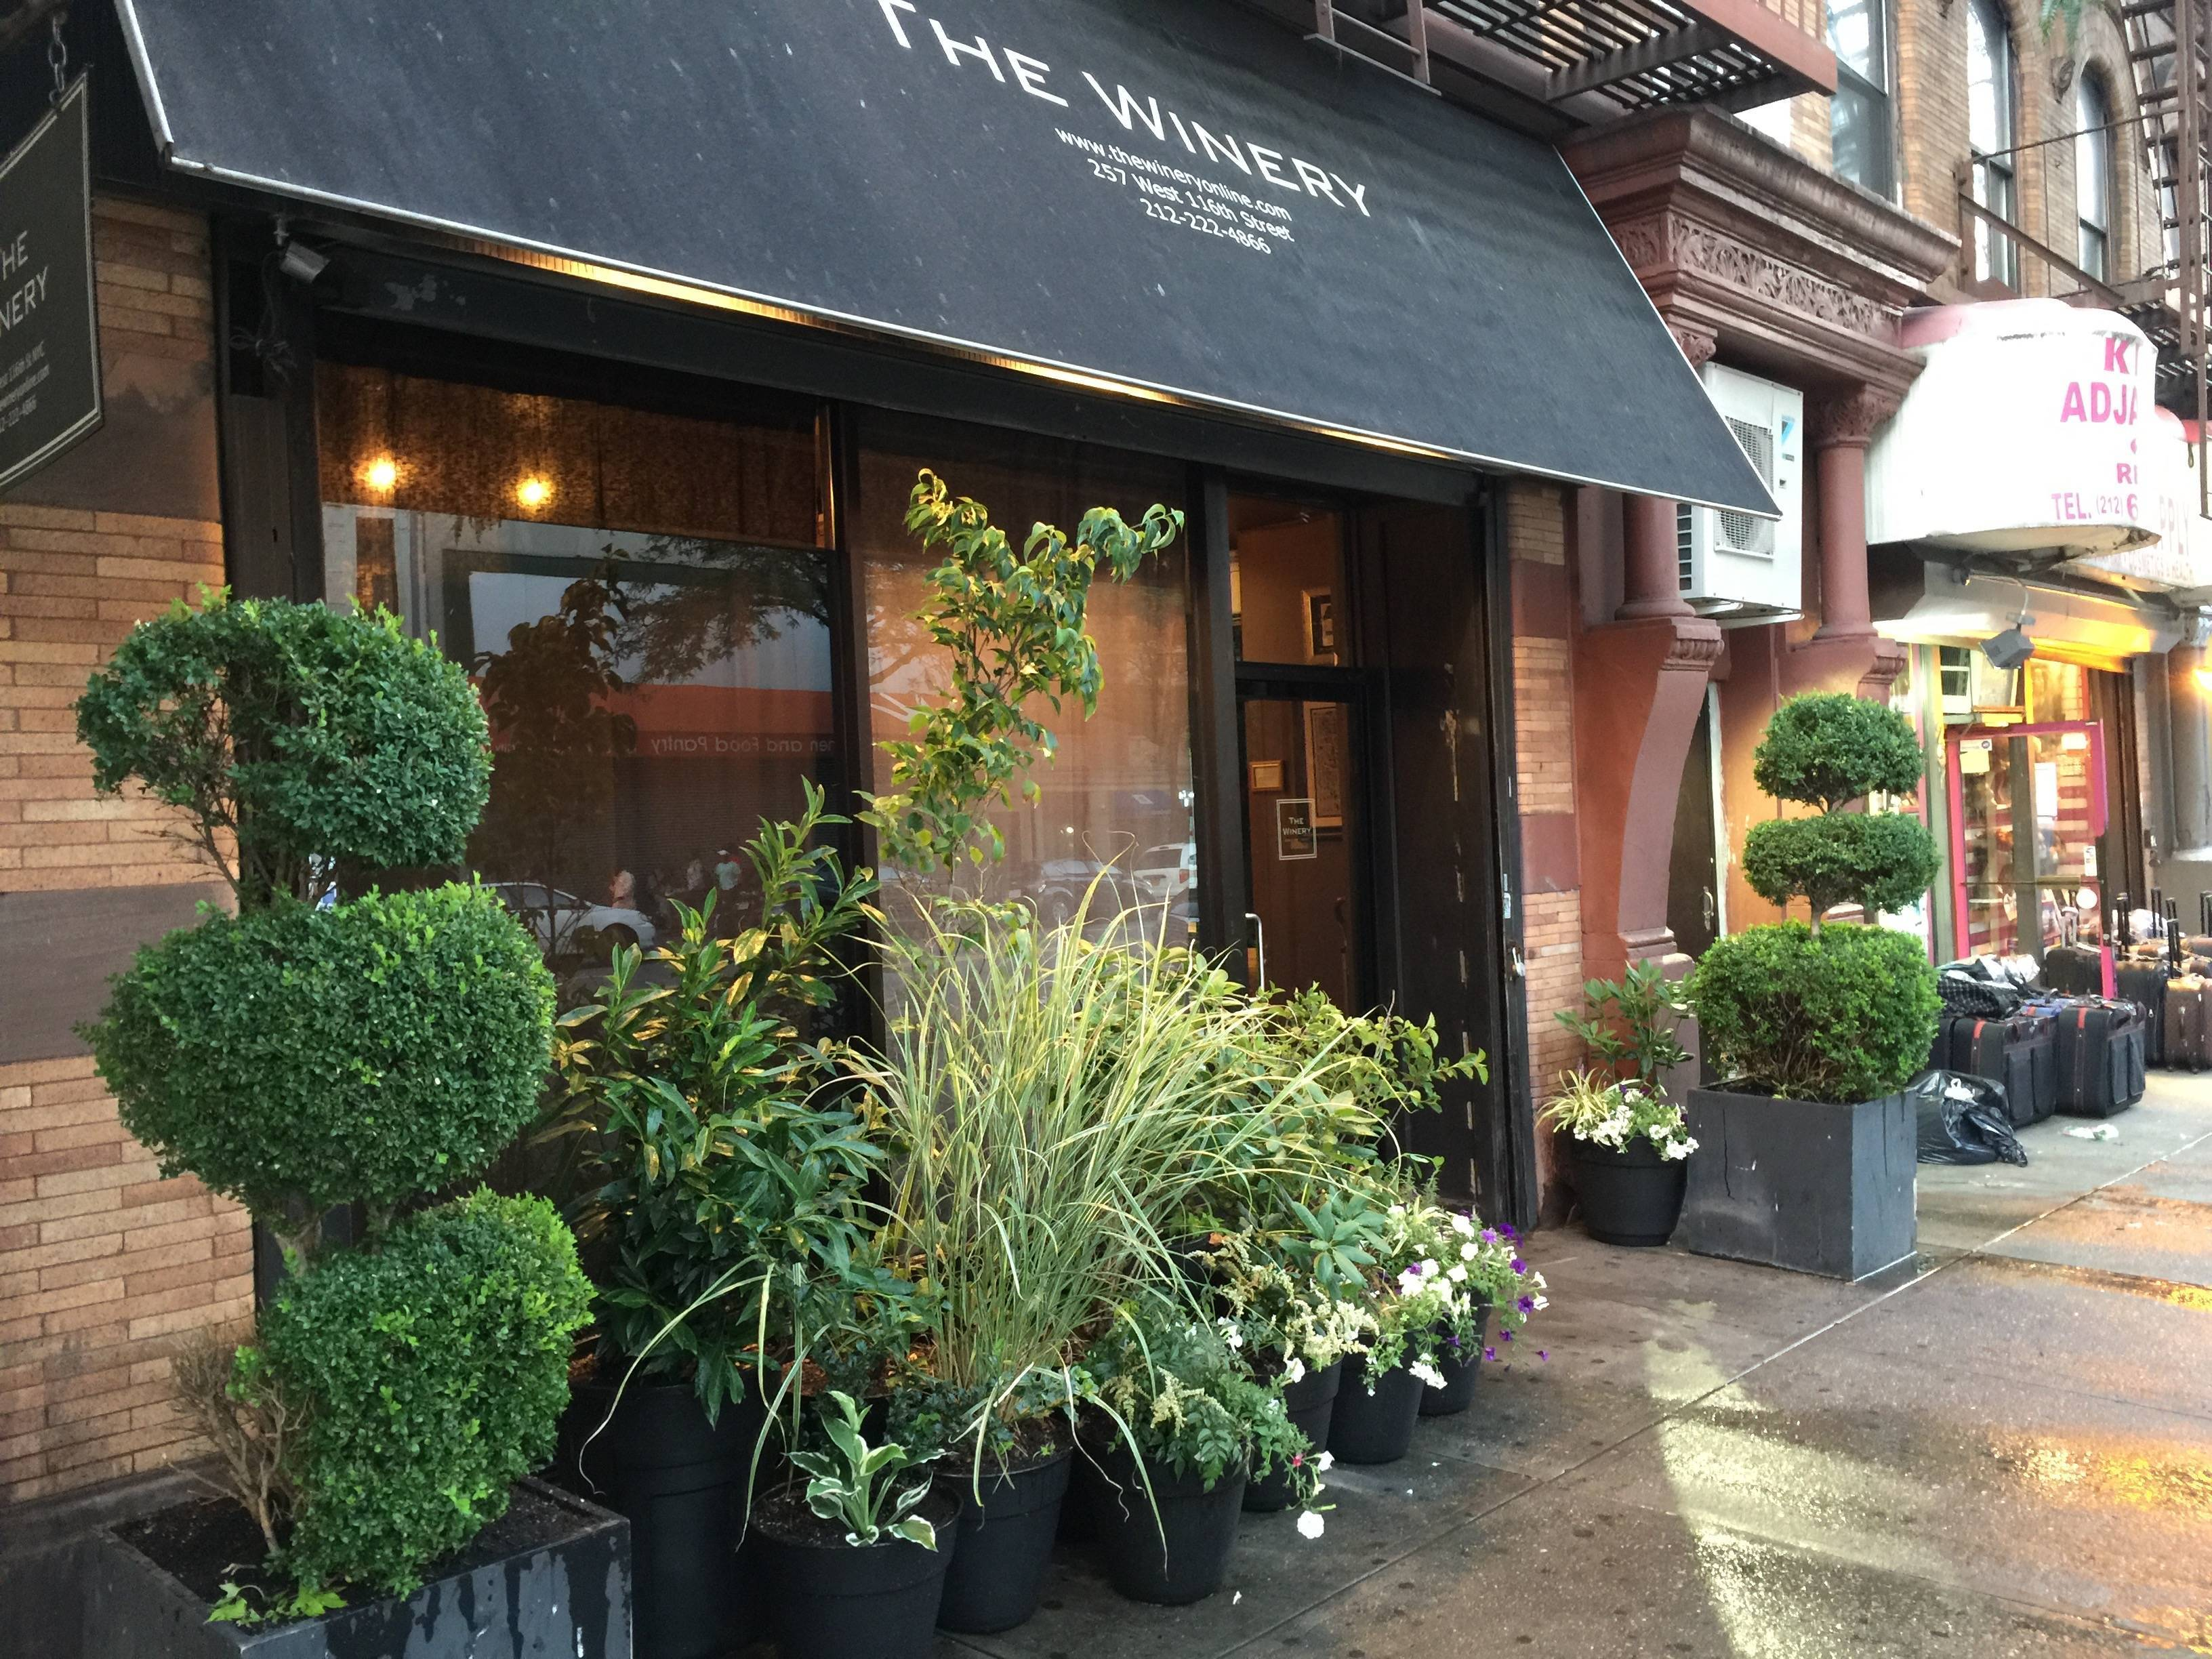 THE WINERY NYC : Artisanal wines for everyone who loves wines; We sell the wines that we love to drink, because life is too short to waste for uninteresting wines.